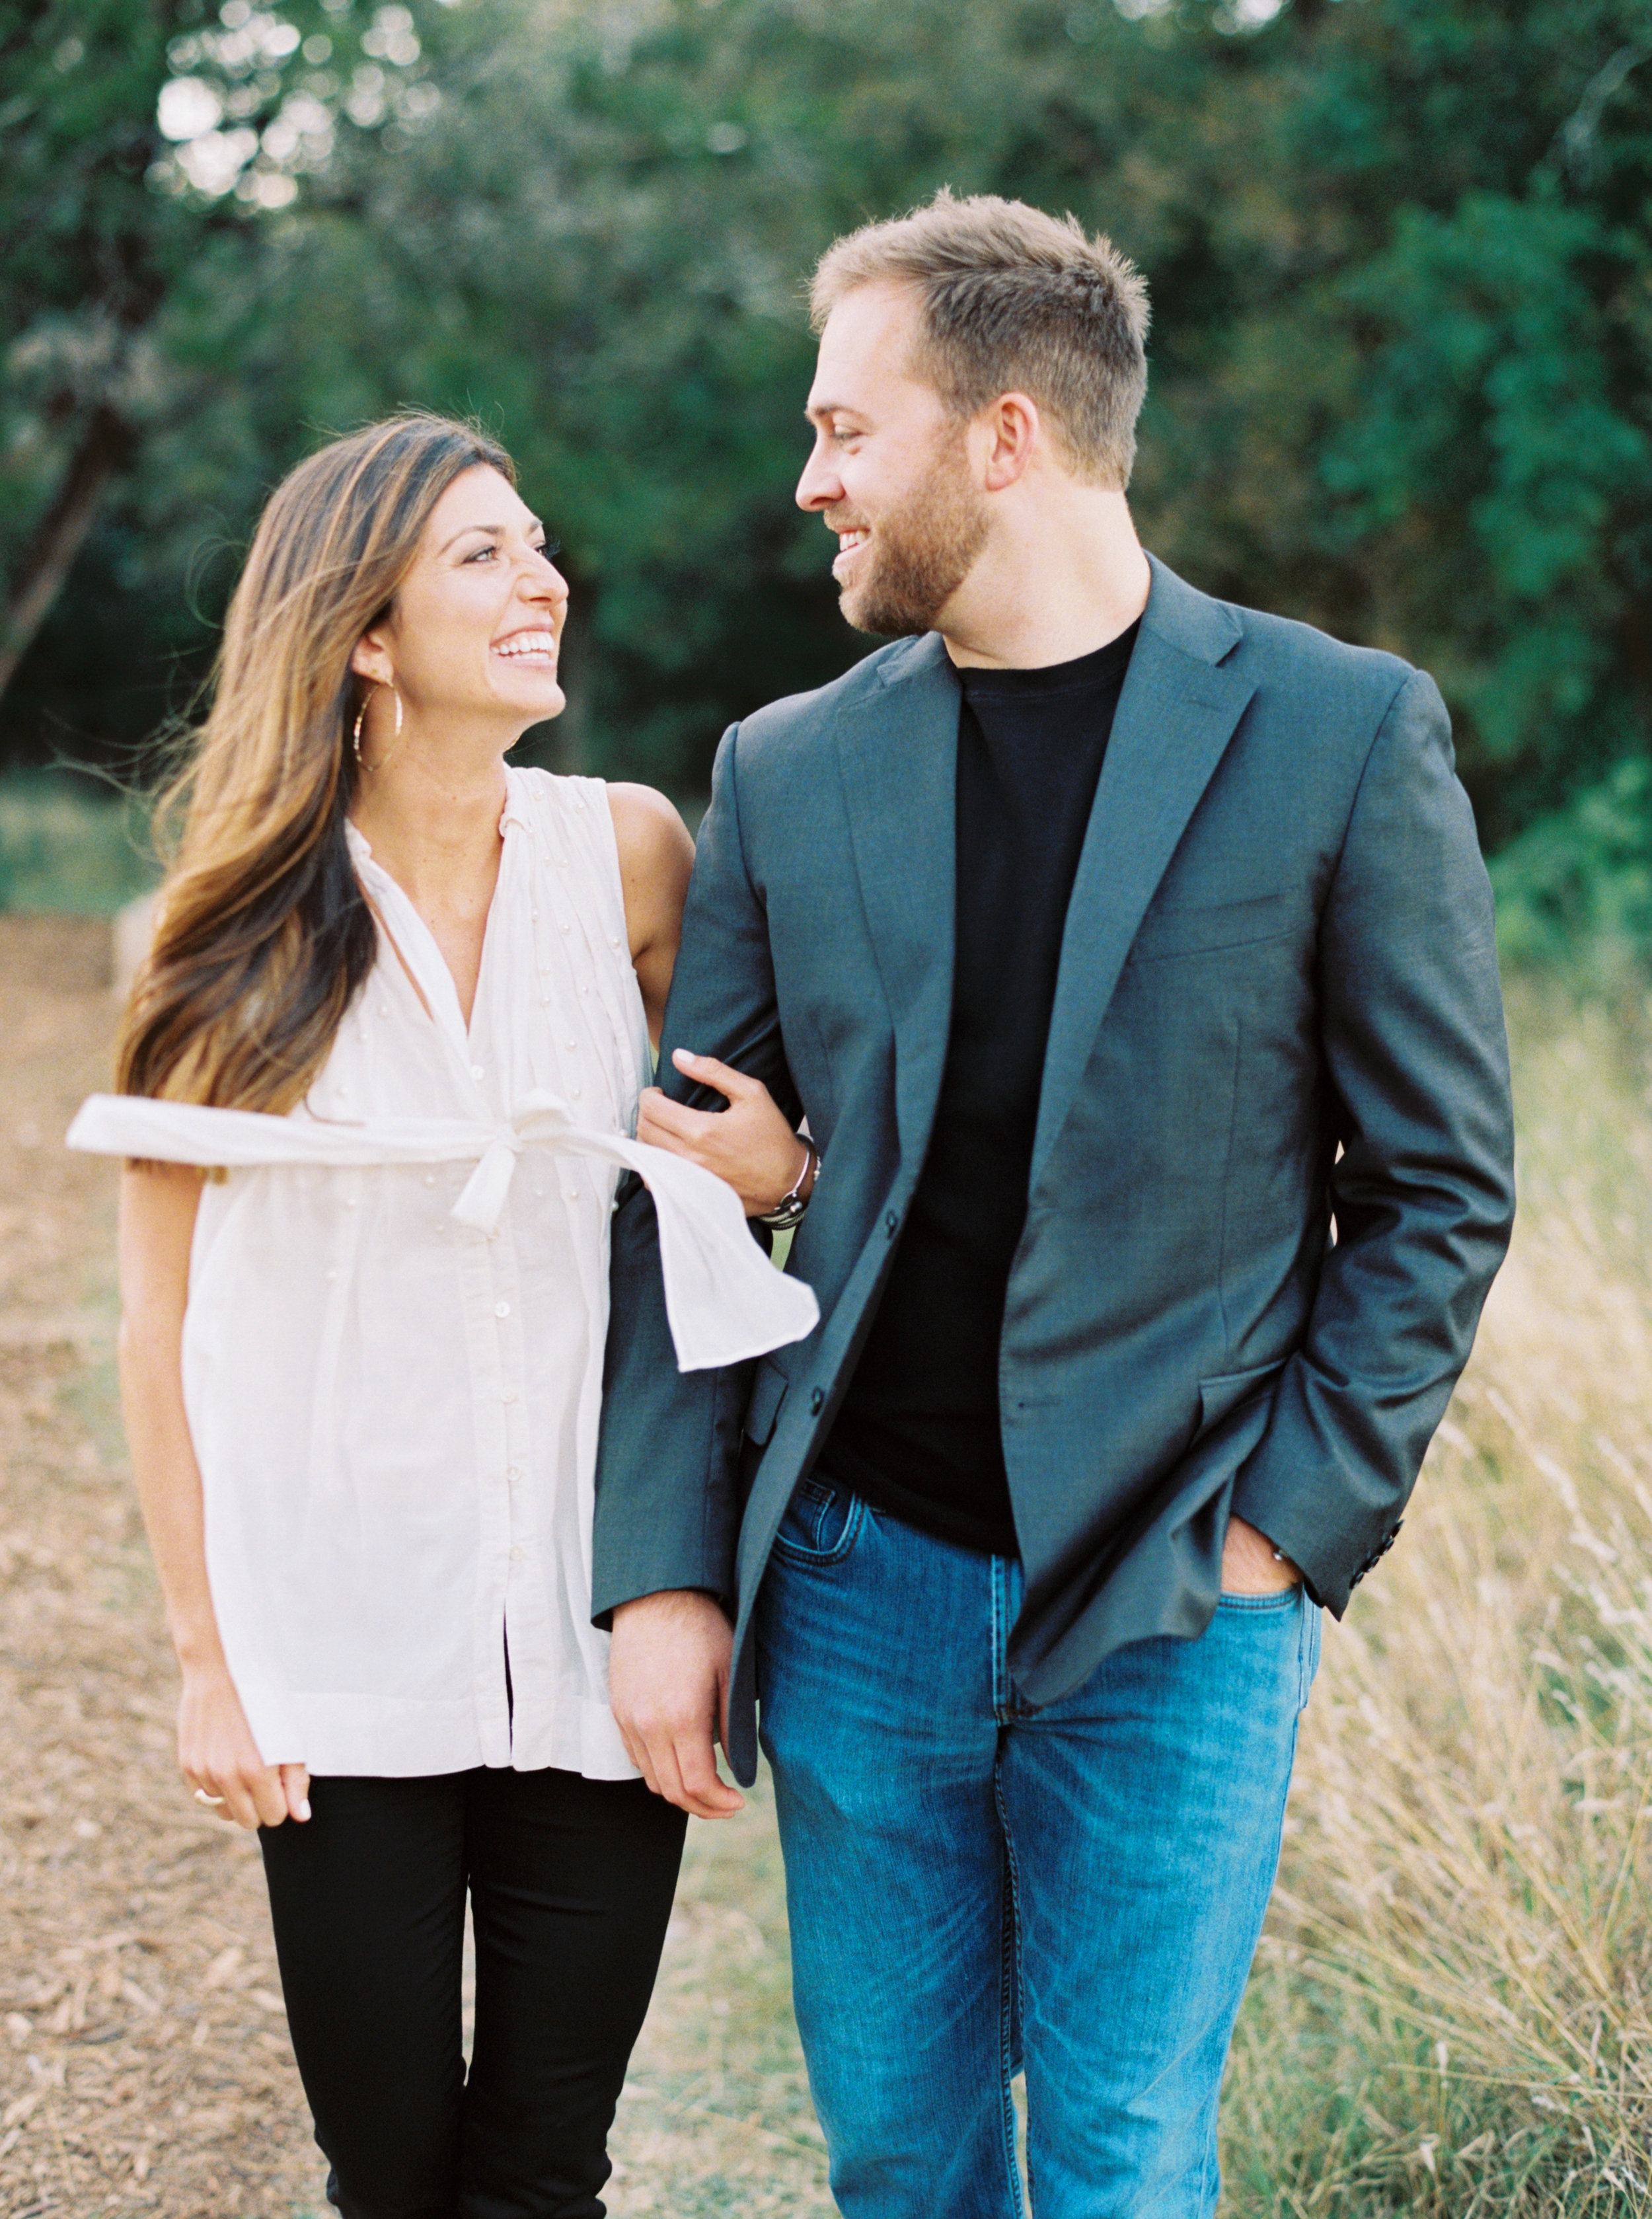 Engagement Session Outfits-151.jpg